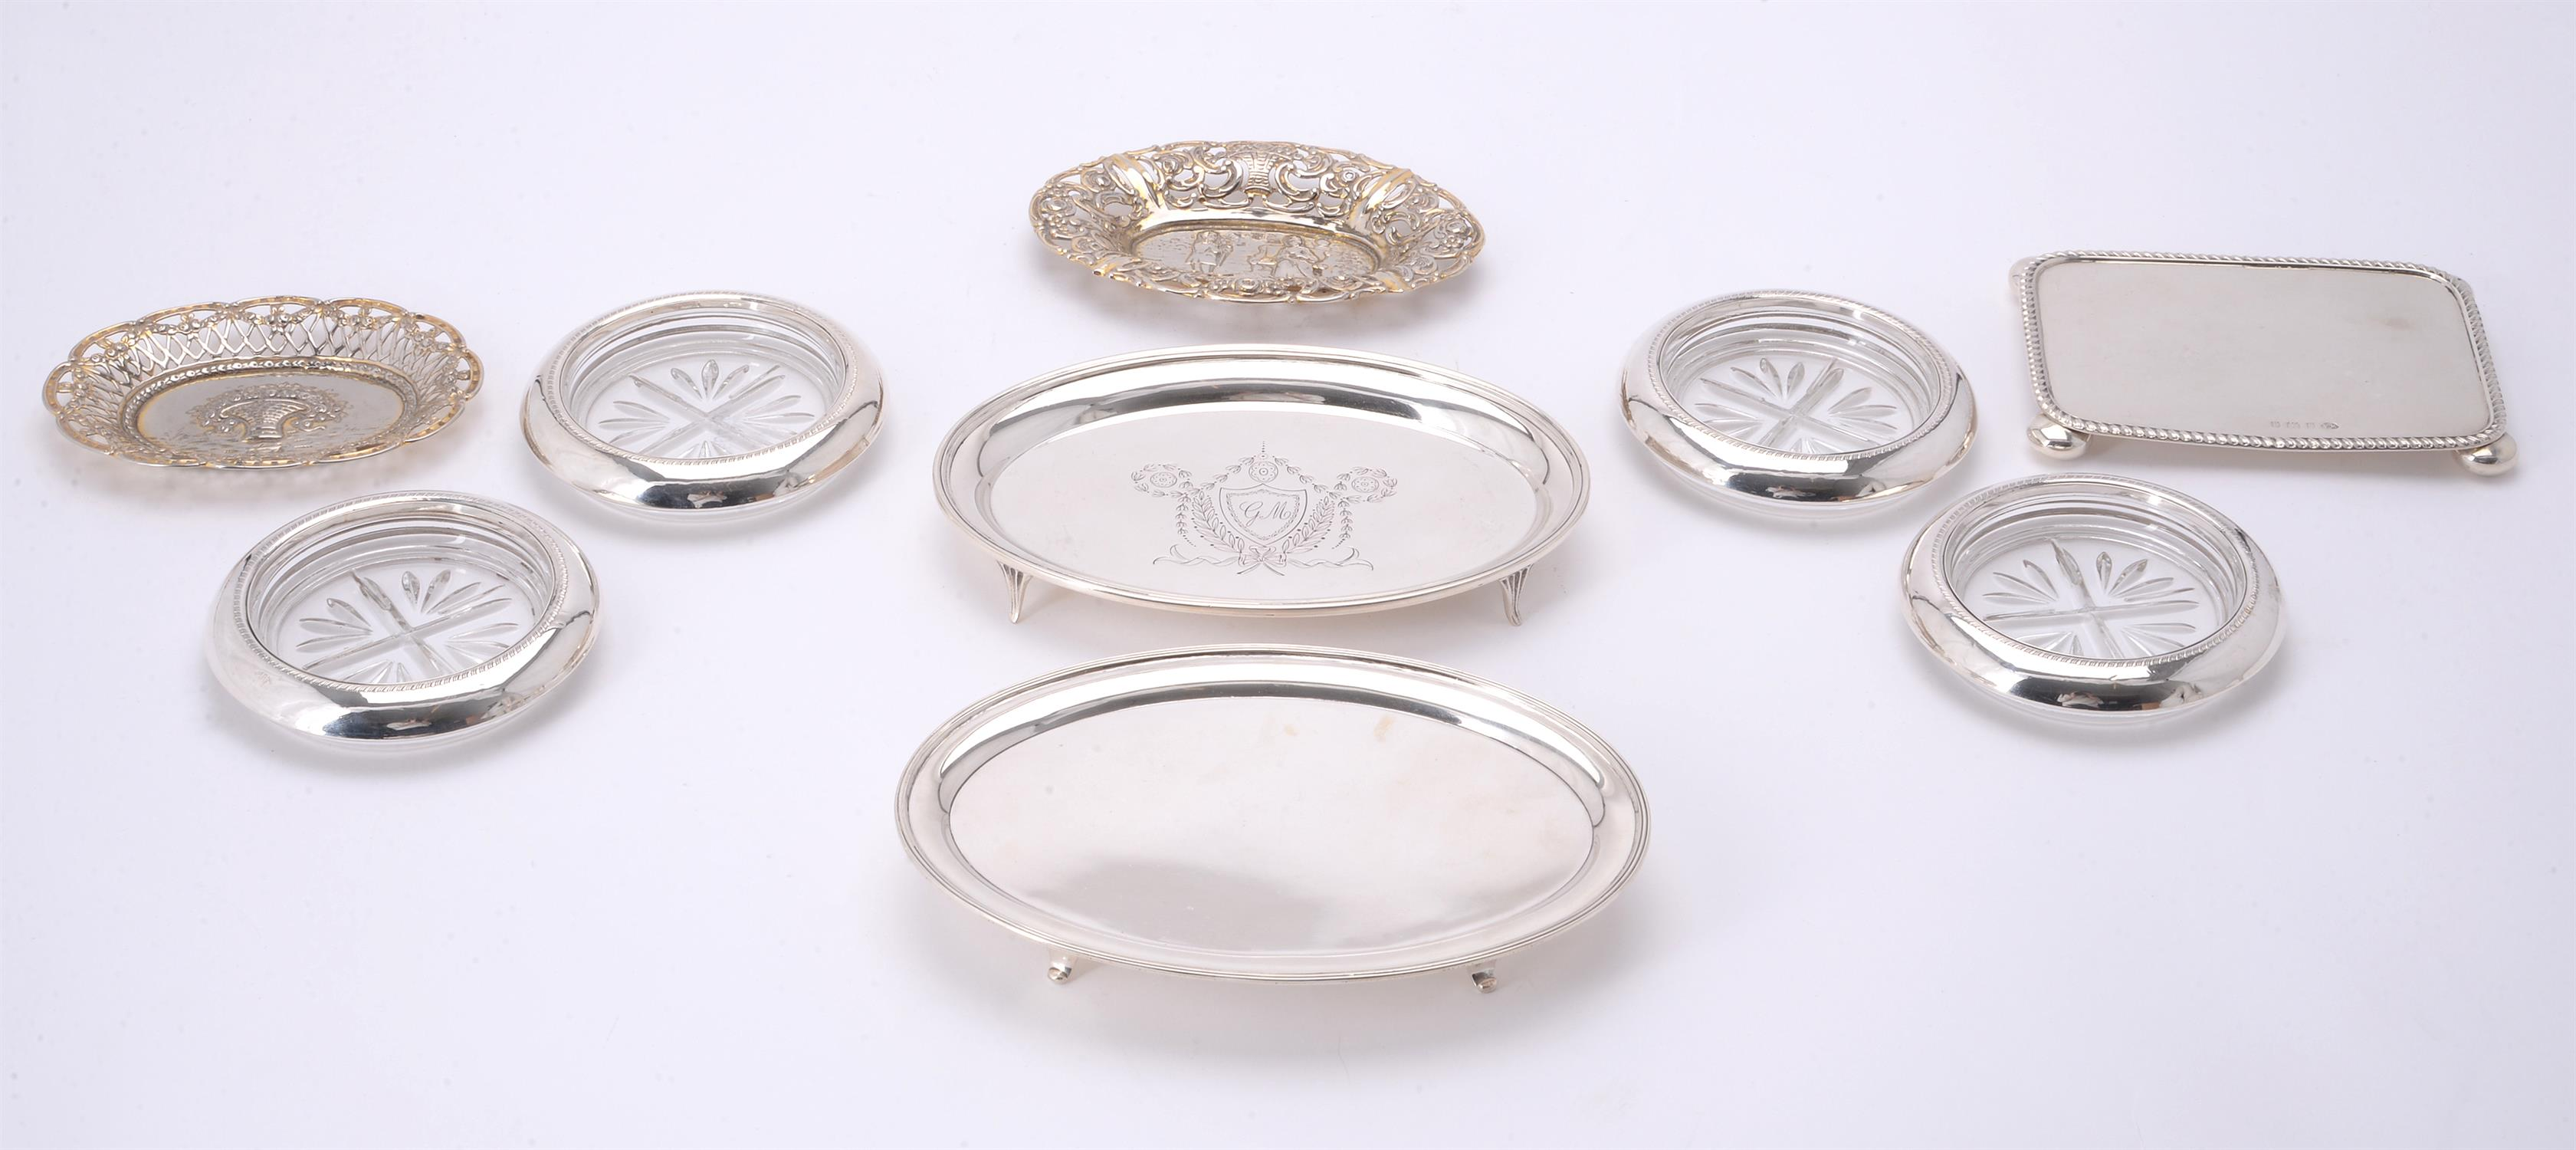 Lot 568 - A collection of silver items